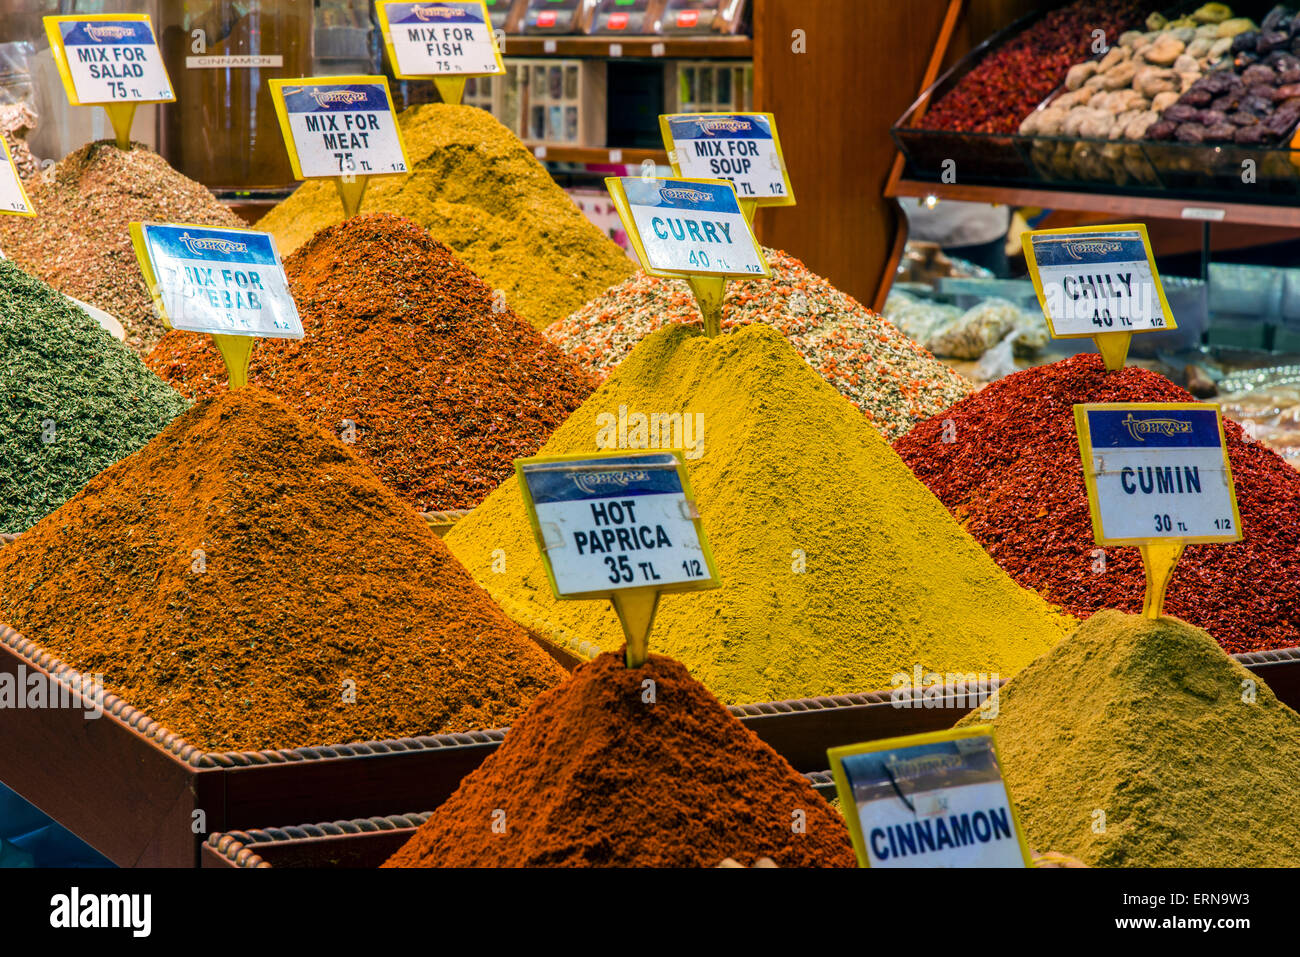 Colorful spices on sale at Spice Bazaar or Egyptian Bazaar, Istanbul, Turkey - Stock Image